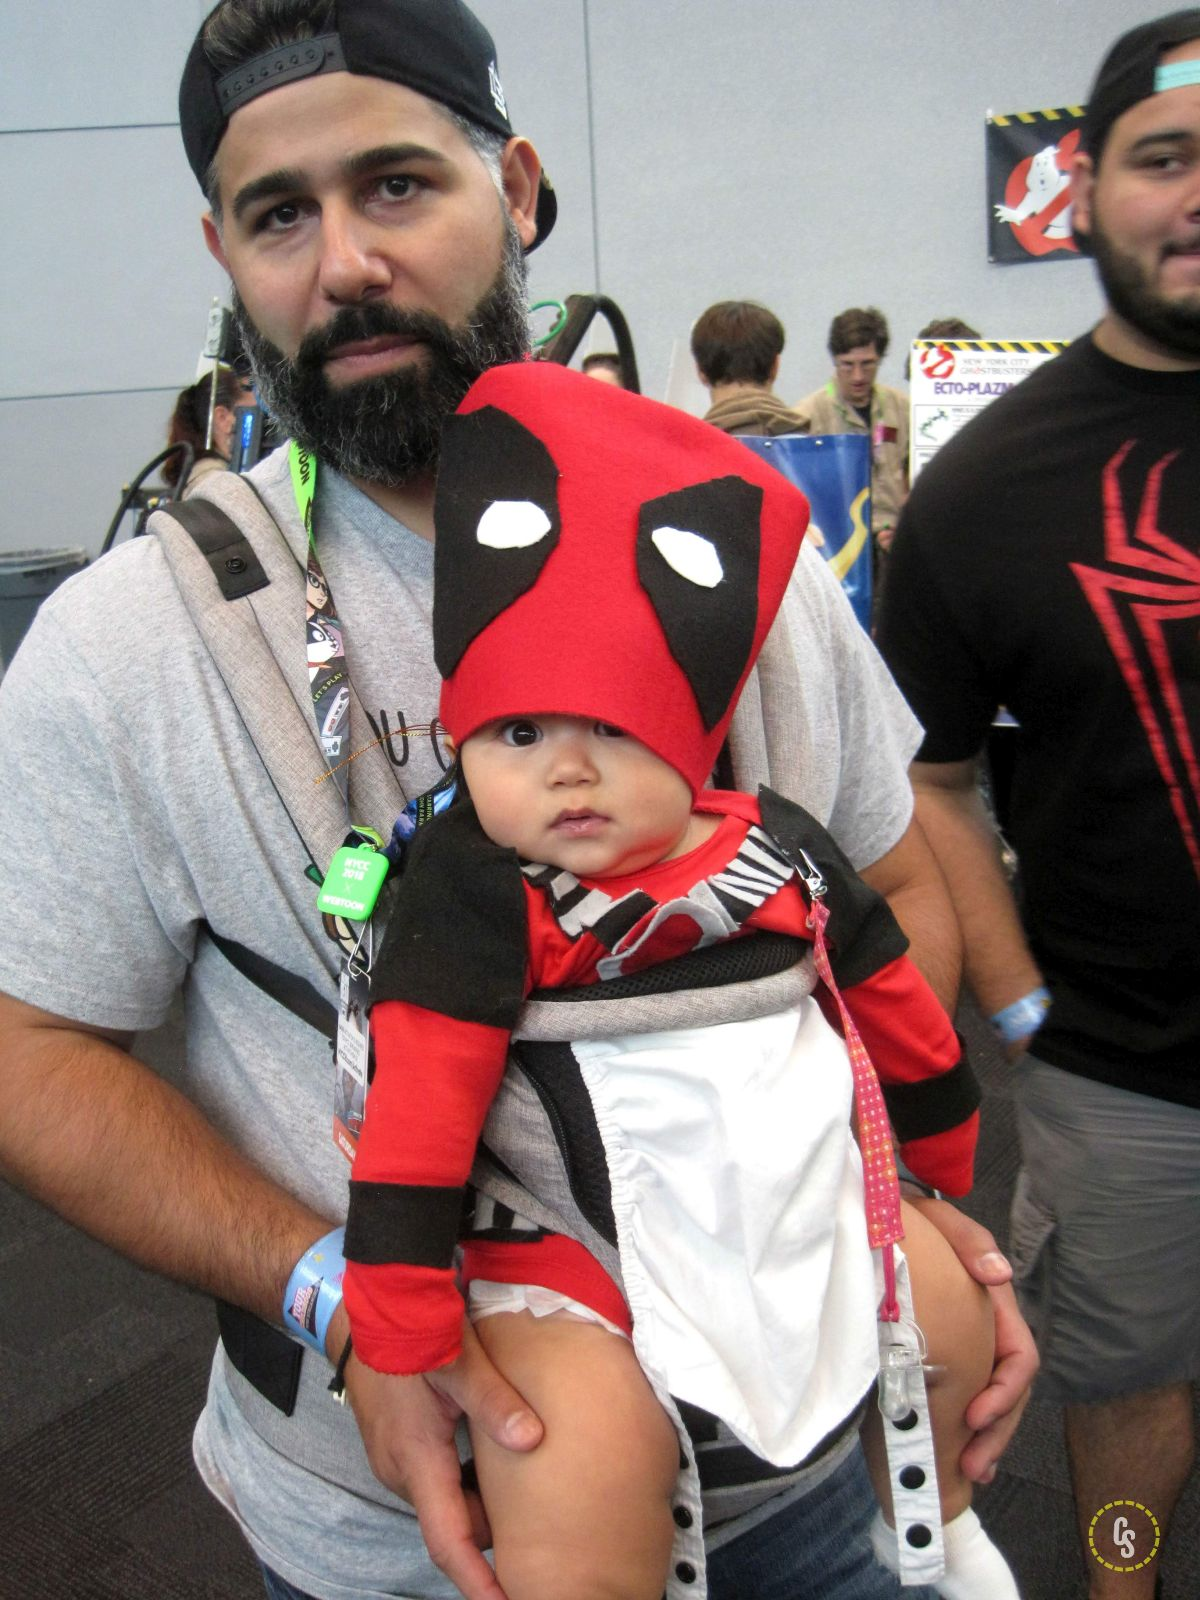 nycc183_079